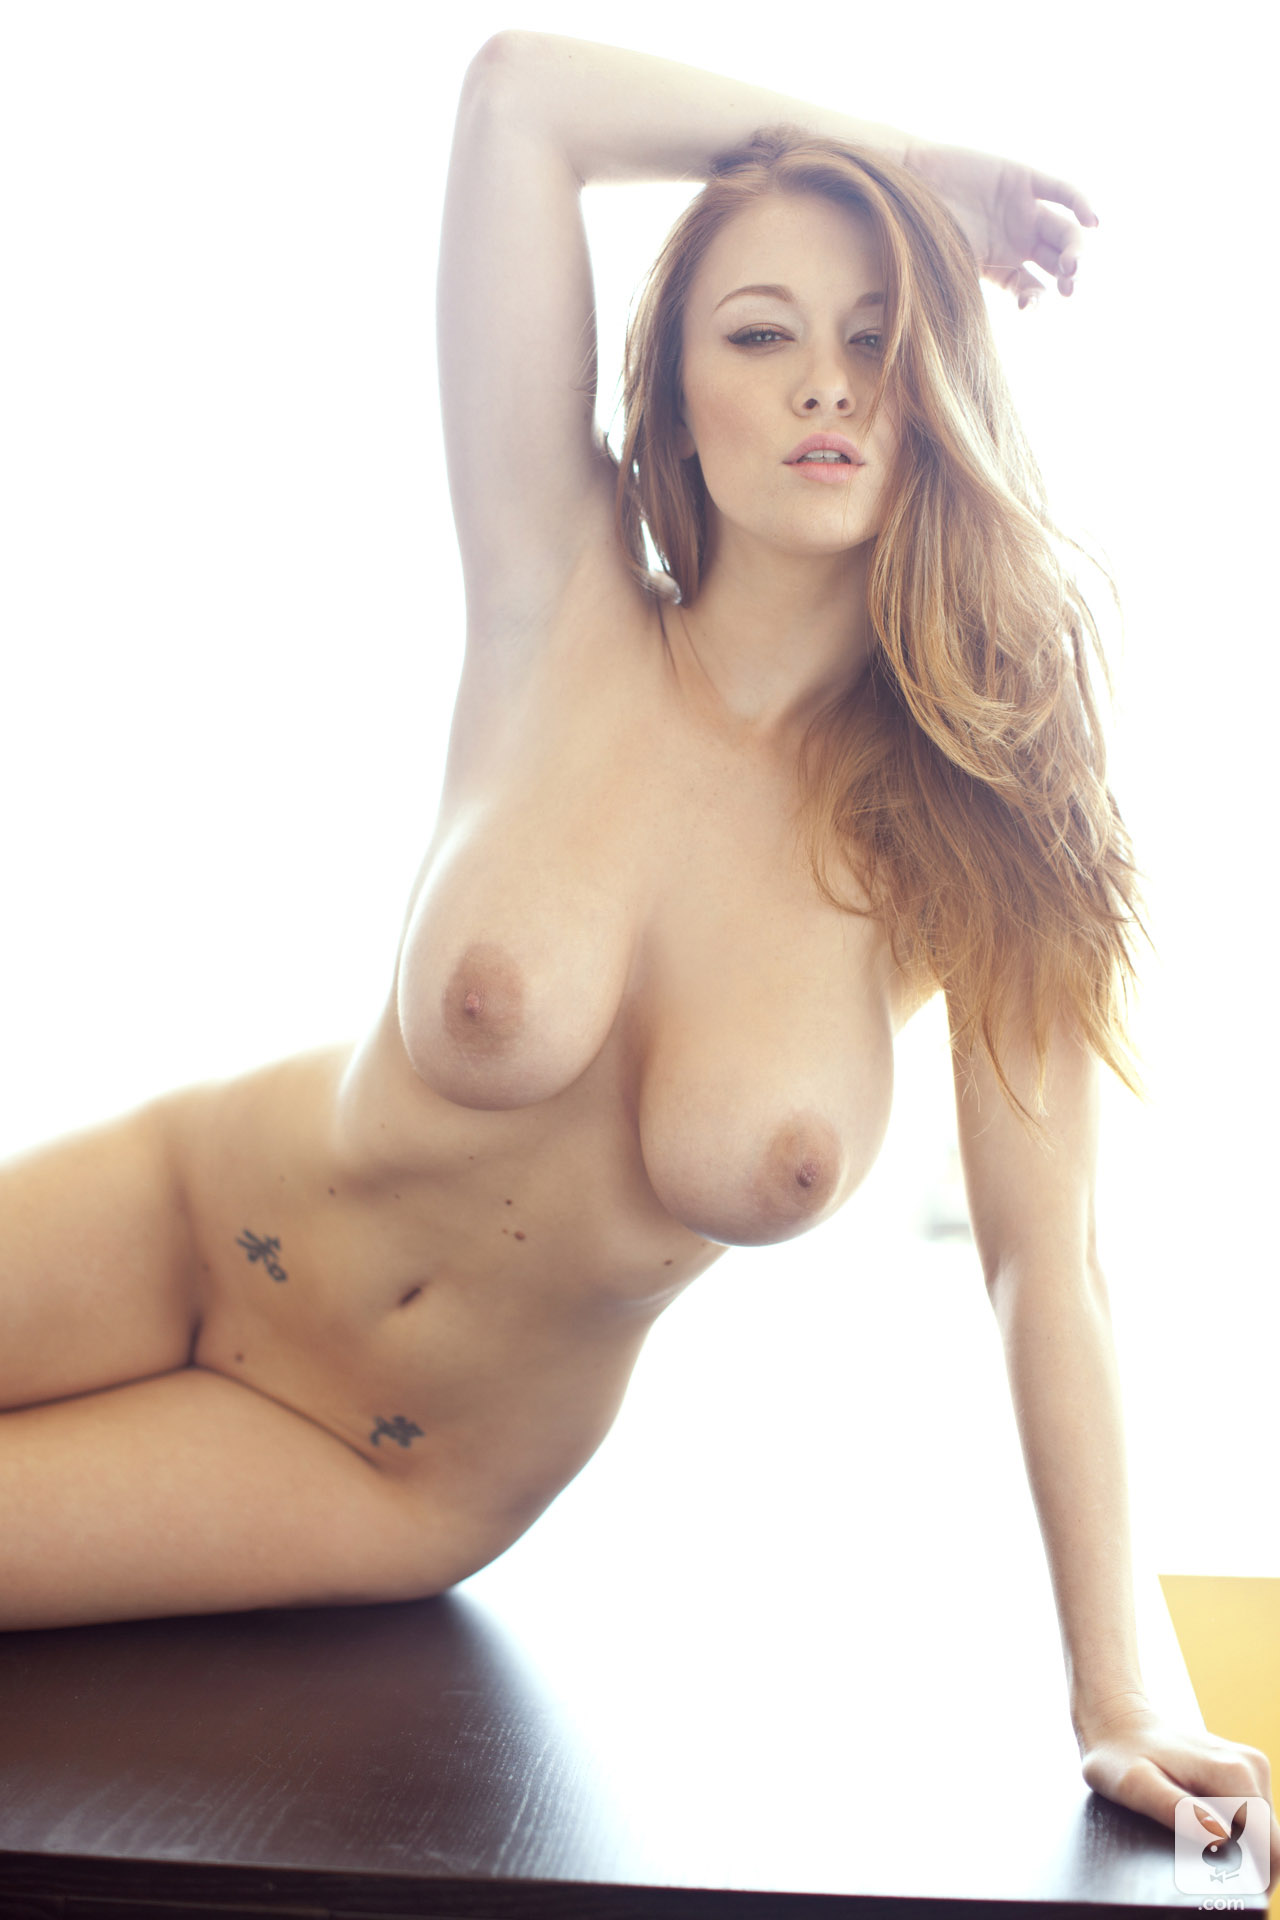 naked pictures of insanely hot girls